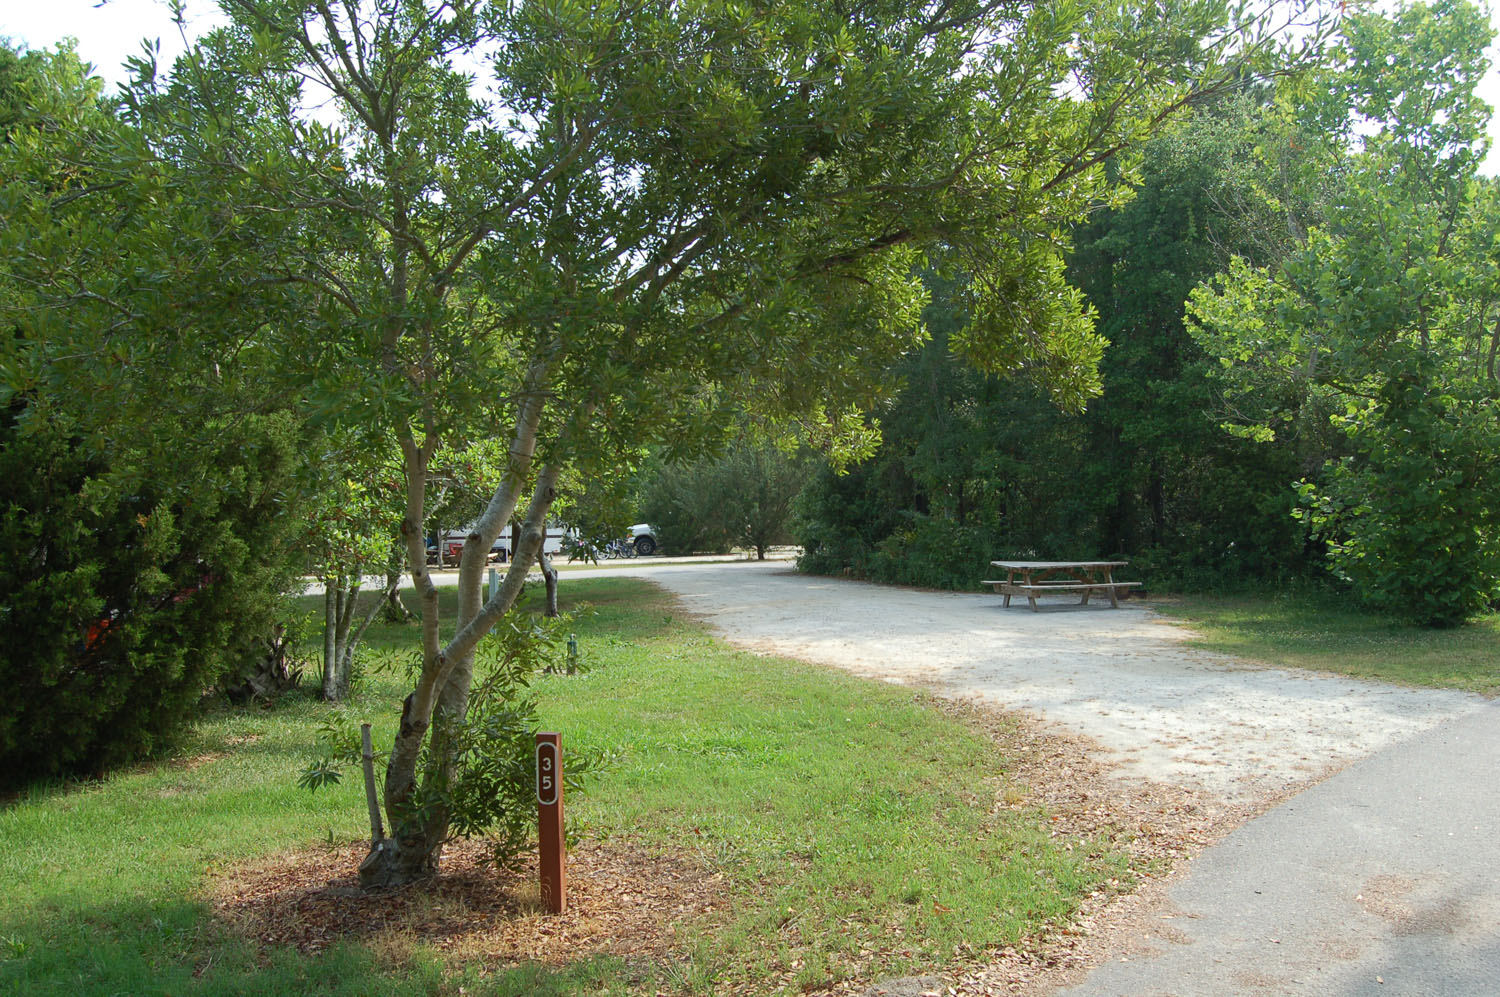 Image of campsite #35 at the Campground at James Island County Park